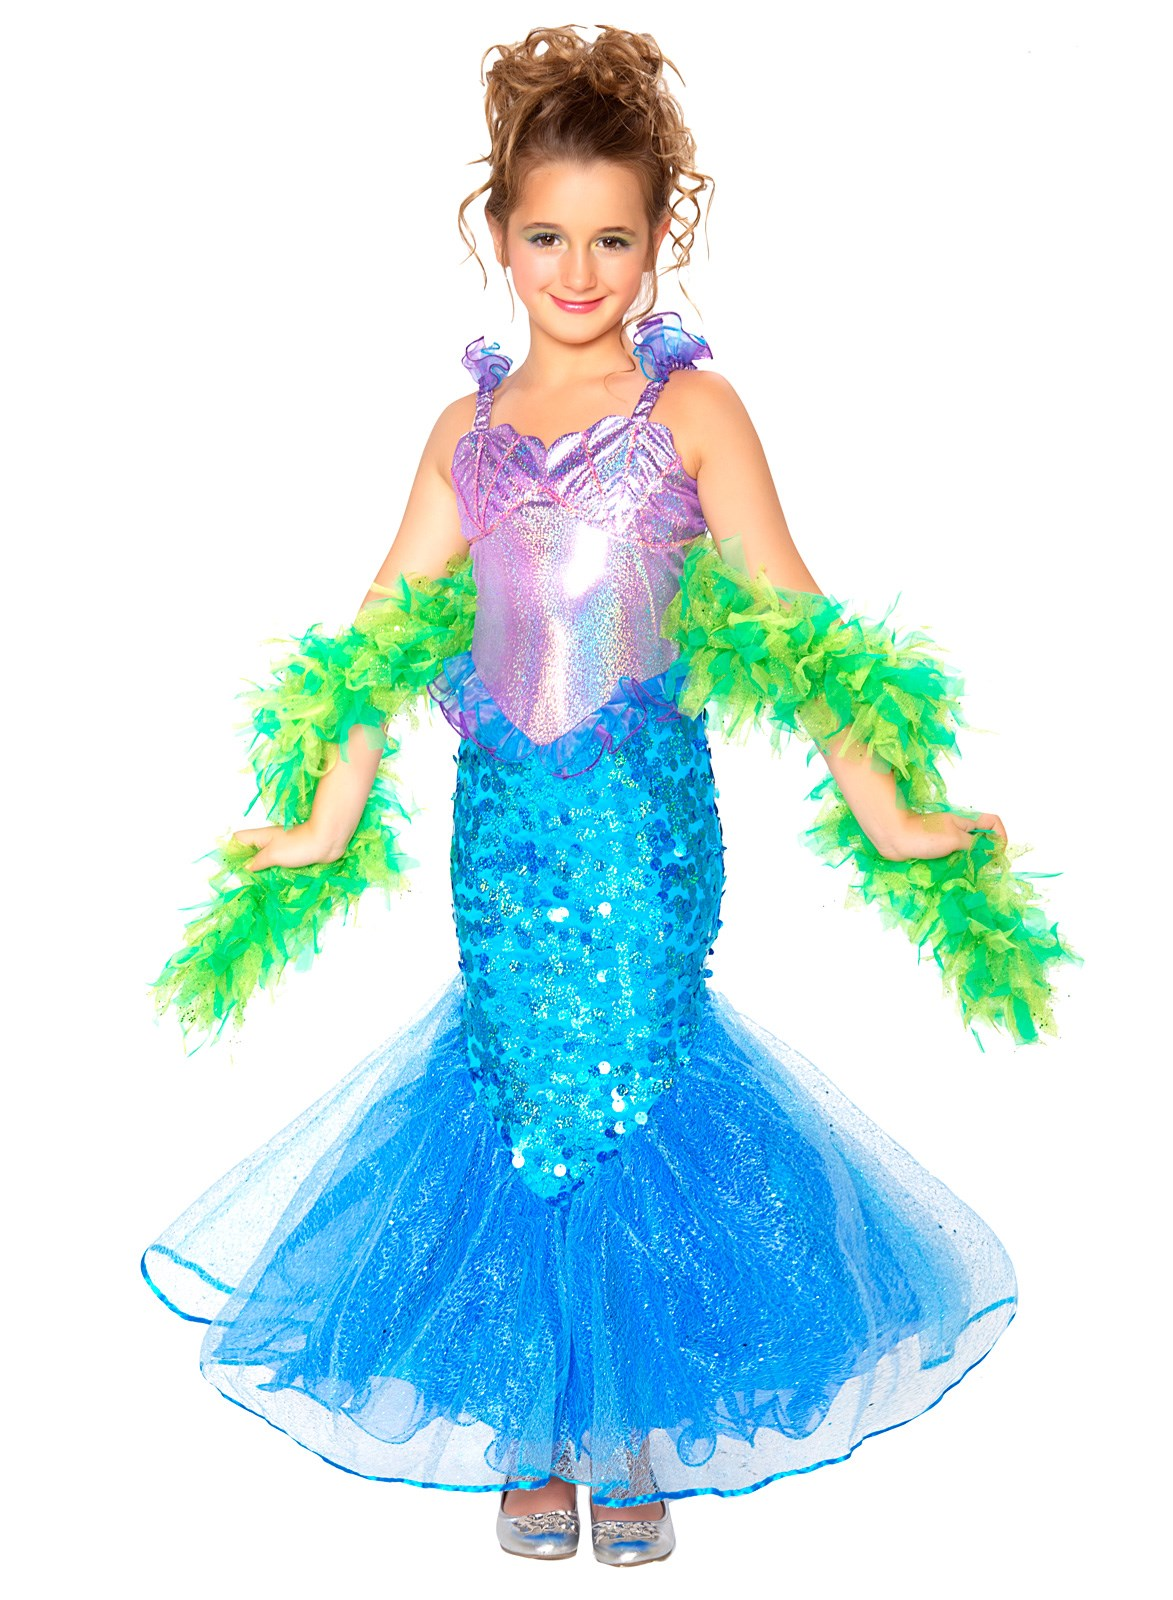 Mermaid Toddler / Child Costume Small (4-6)